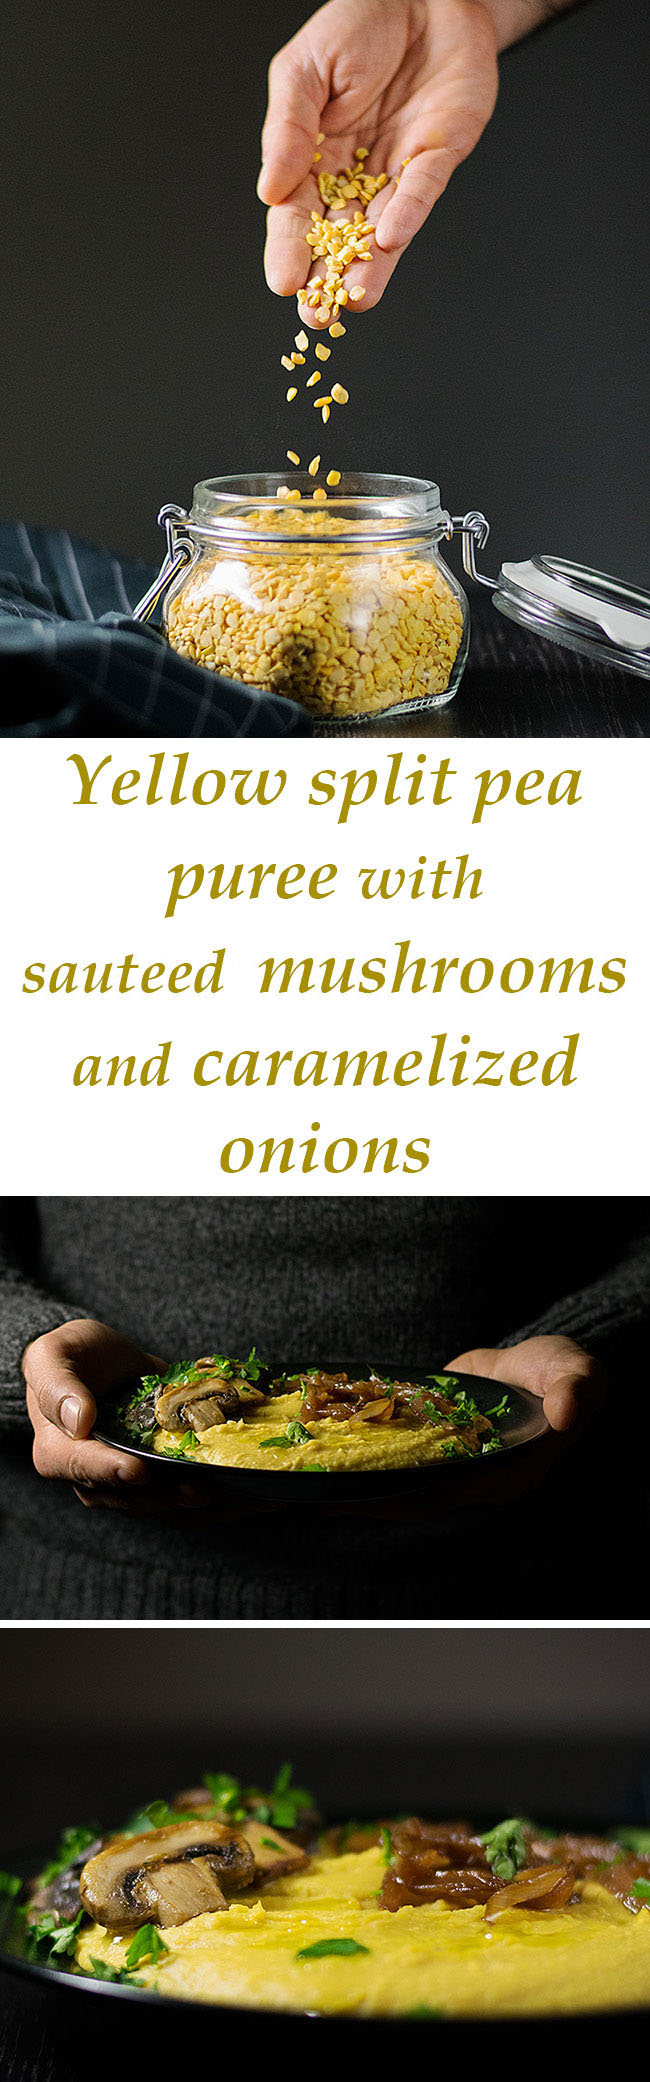 yellow-split-pea-purée-with-mushrooms-and-caramelized-onions-5a